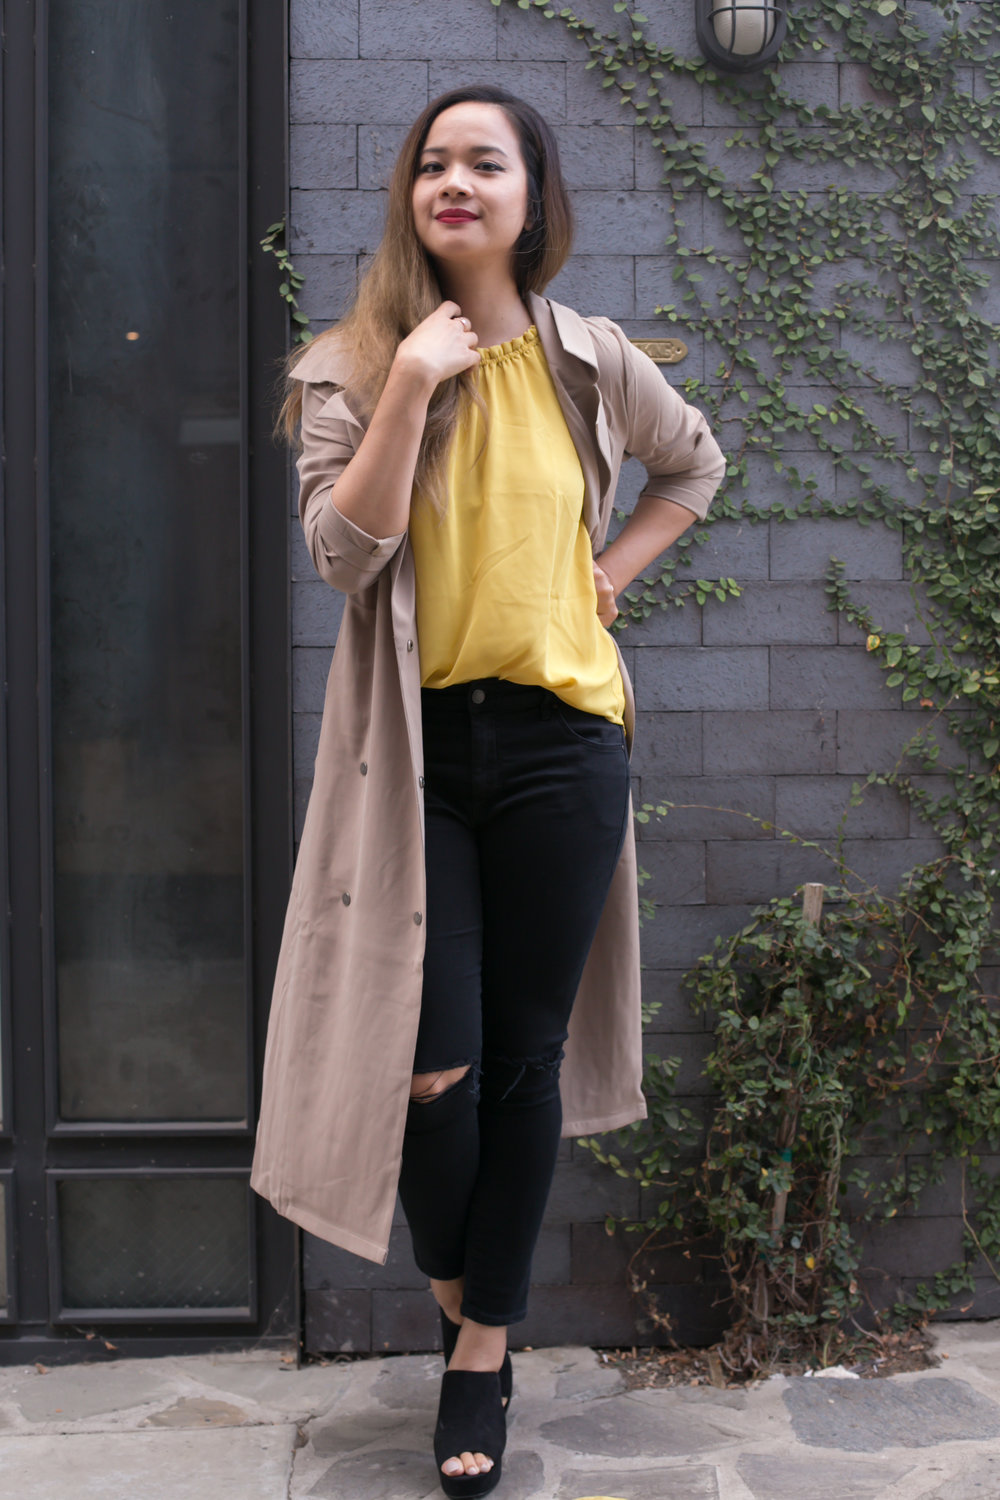 Trench Coat: Miilla, available via Poshmark; similar here, and here Loafers: ASOS; similar here Jeans: Topshop Jamie